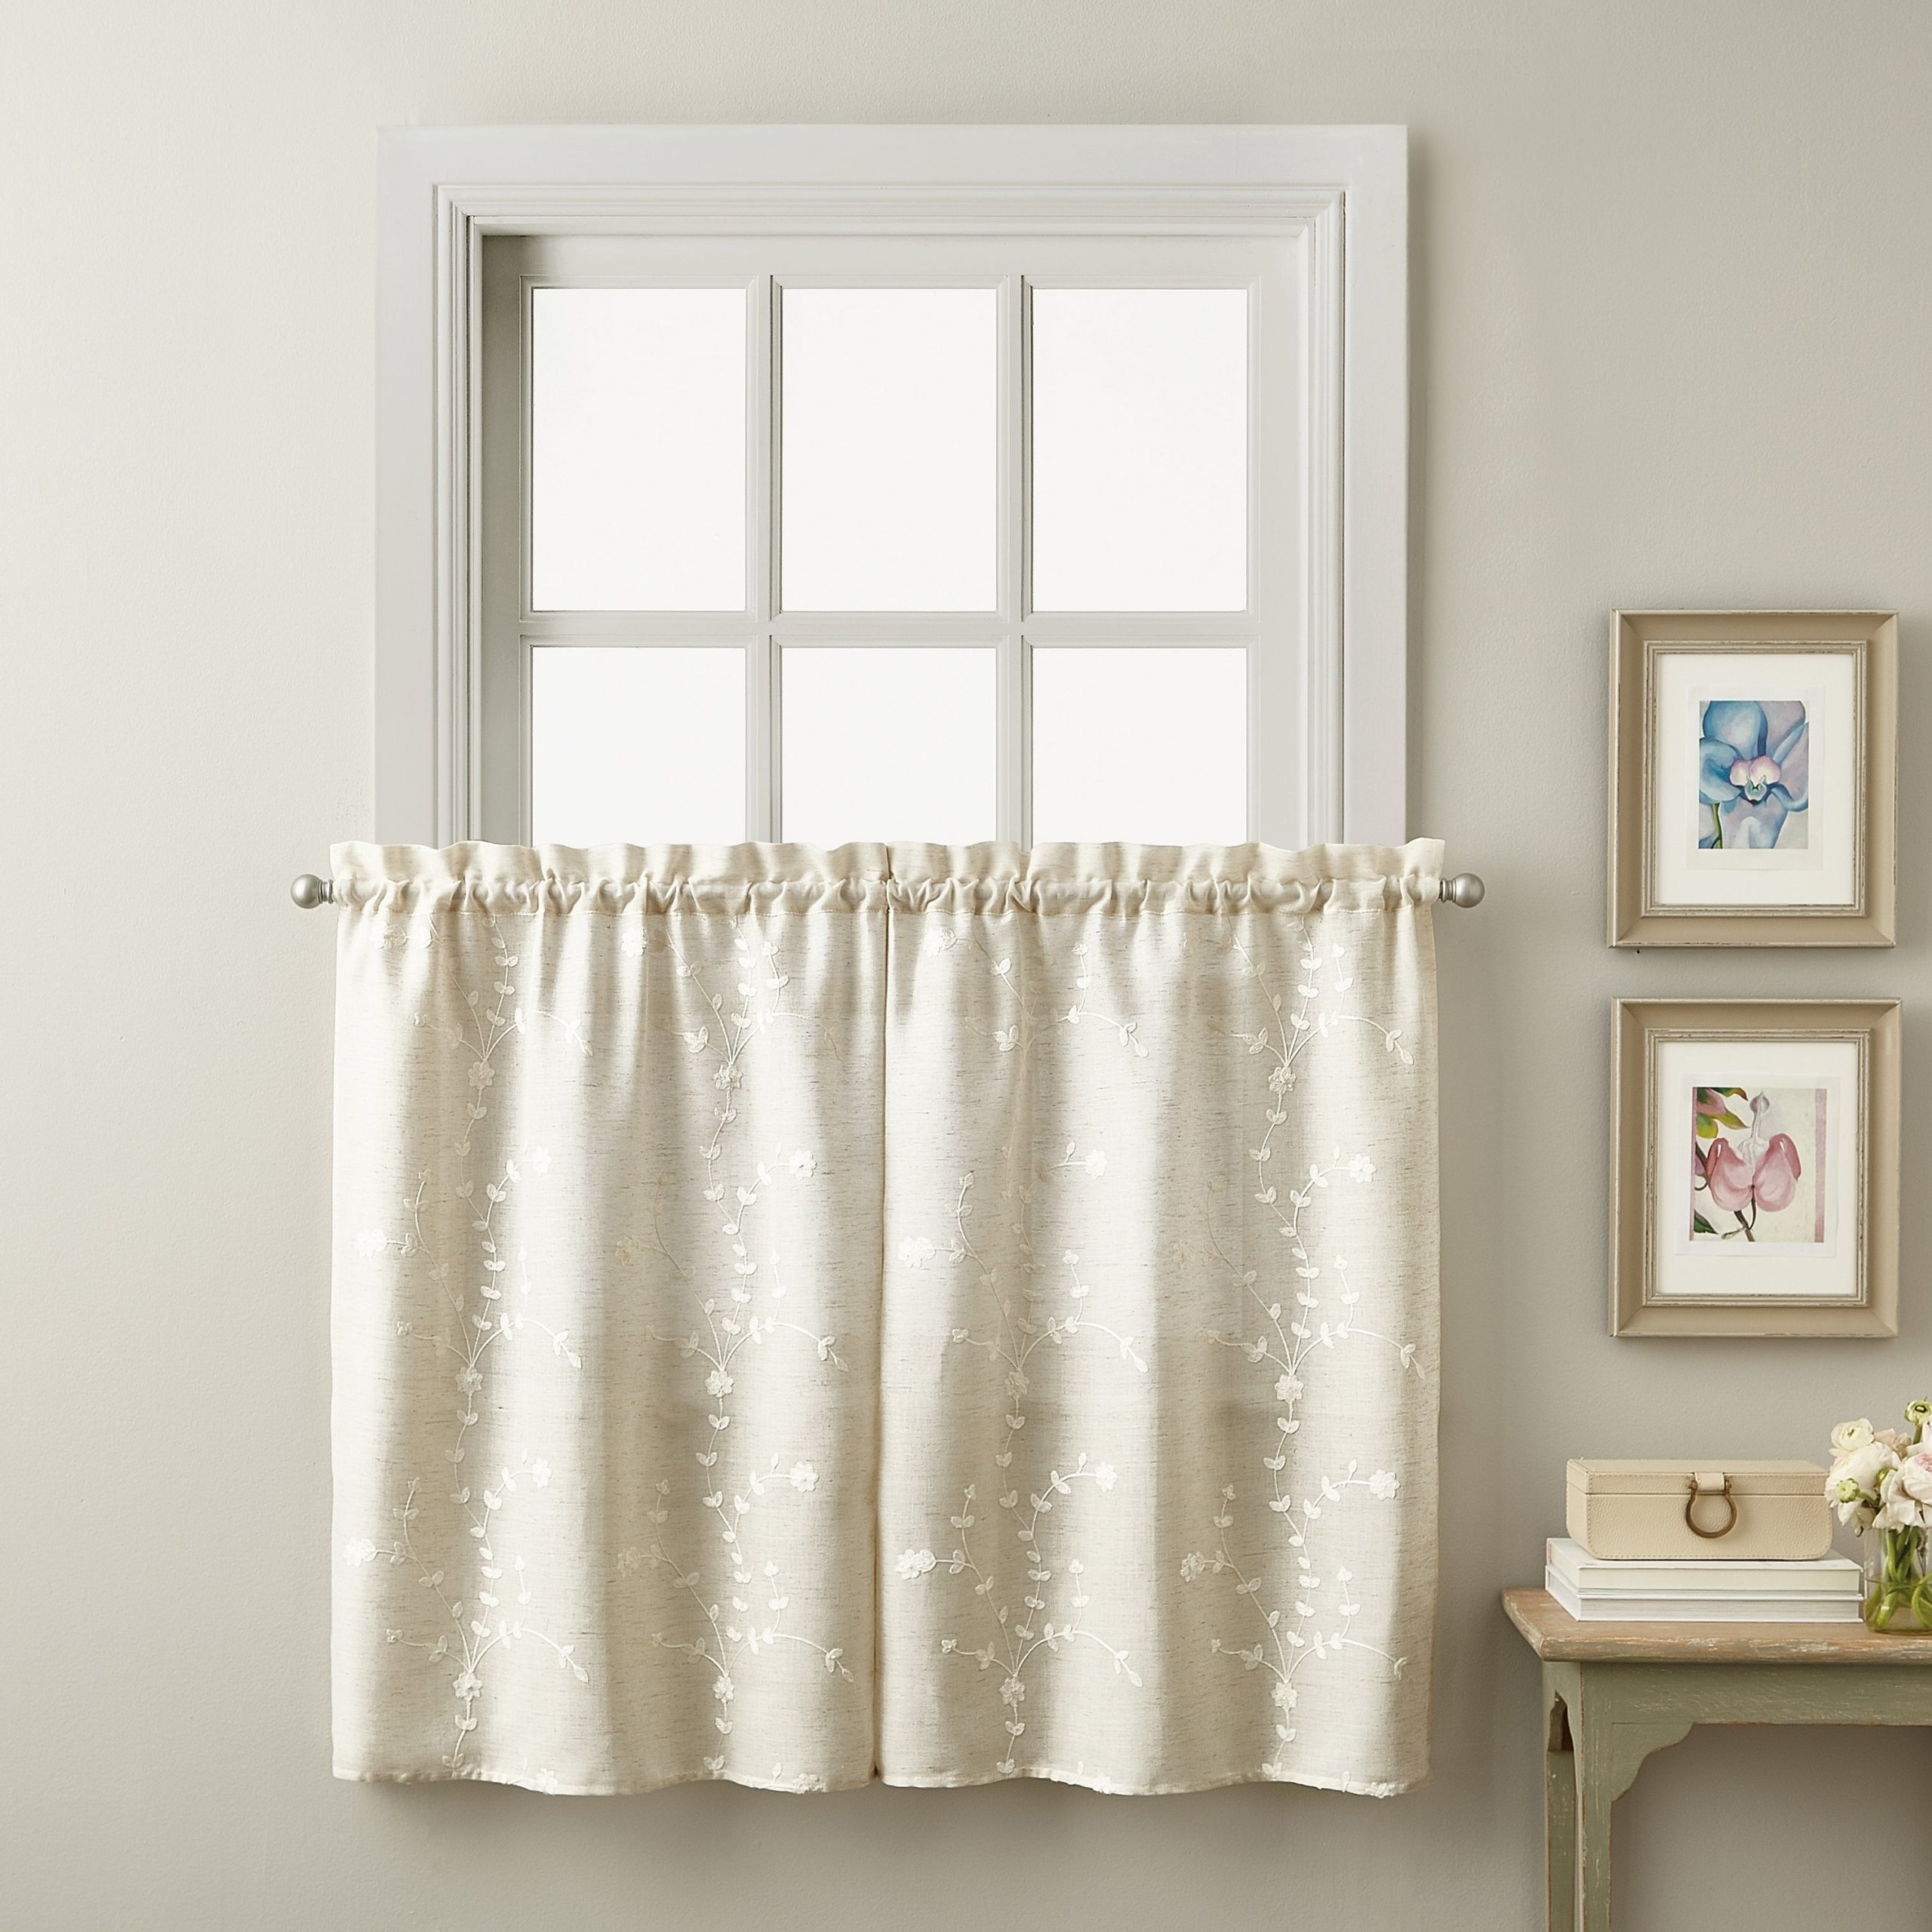 Lynette Tailored Tier Set And Valance Curtain Collection With White Tone On Tone Raised Microcheck Semisheer Window Curtain Pieces (View 10 of 20)